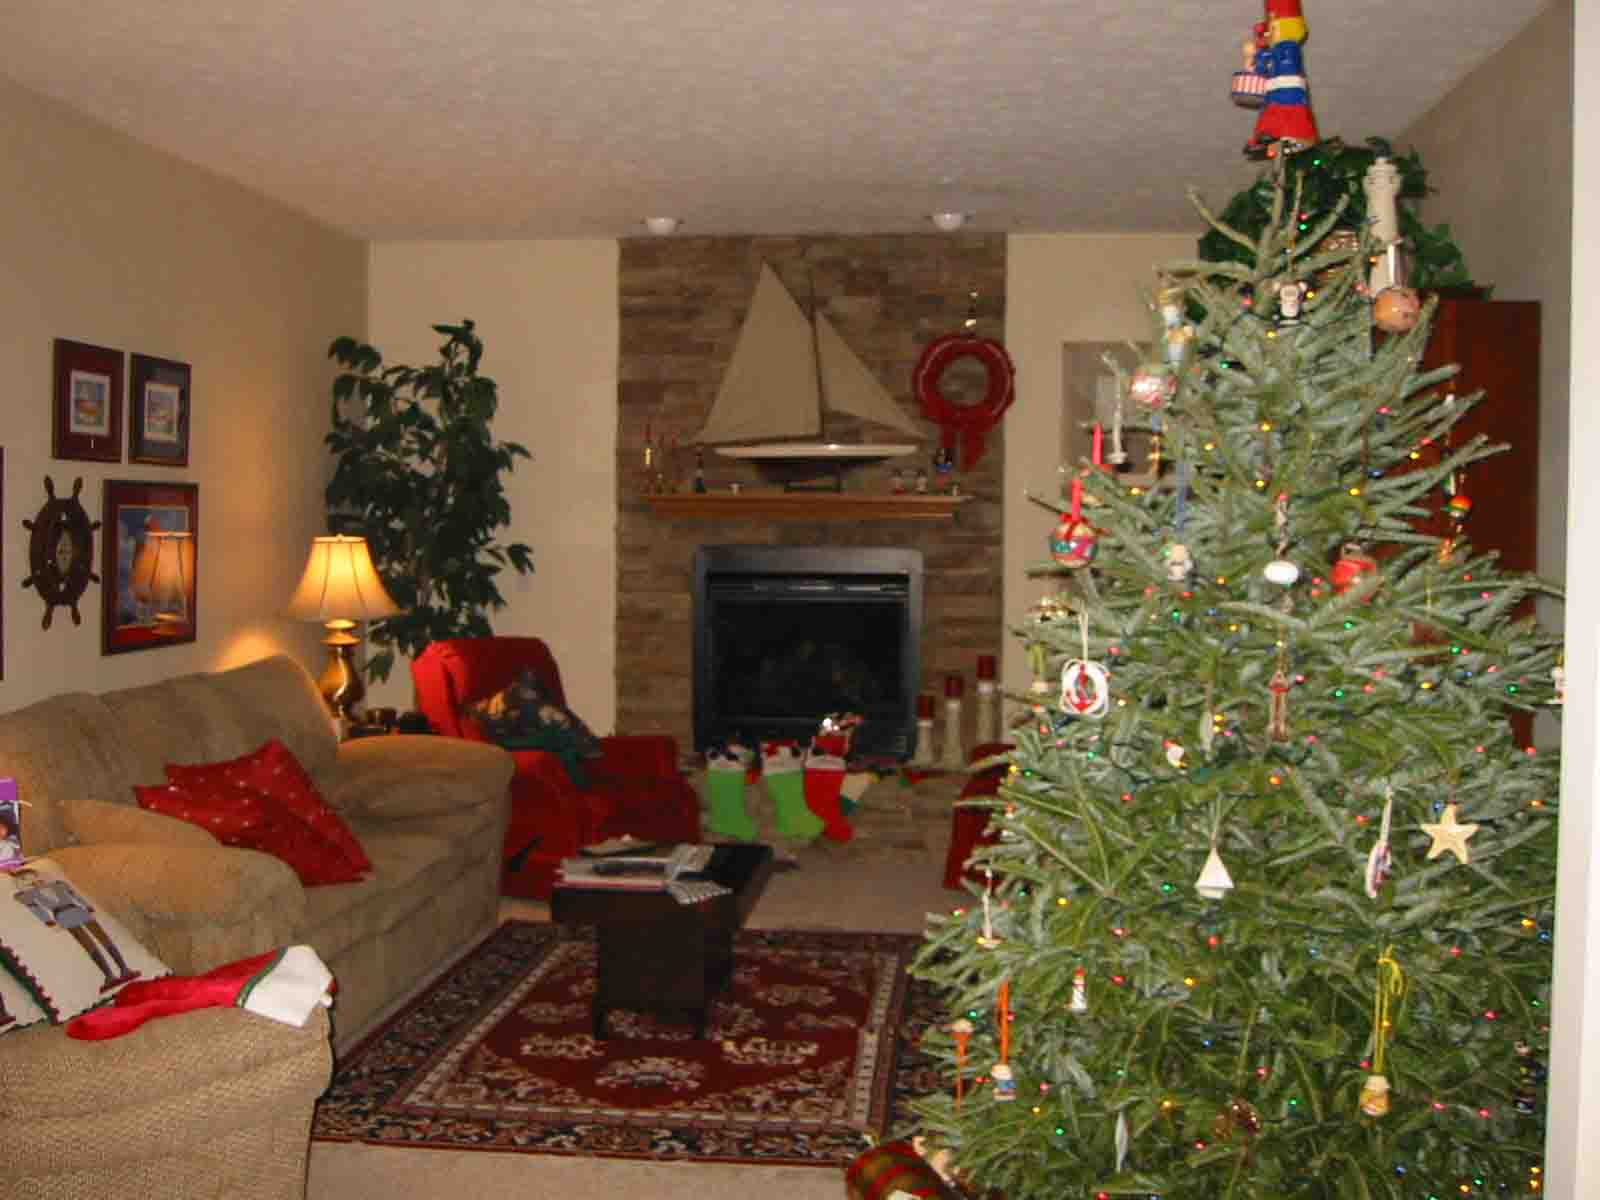 Christmas Tree In Living Room Photos Christmas And